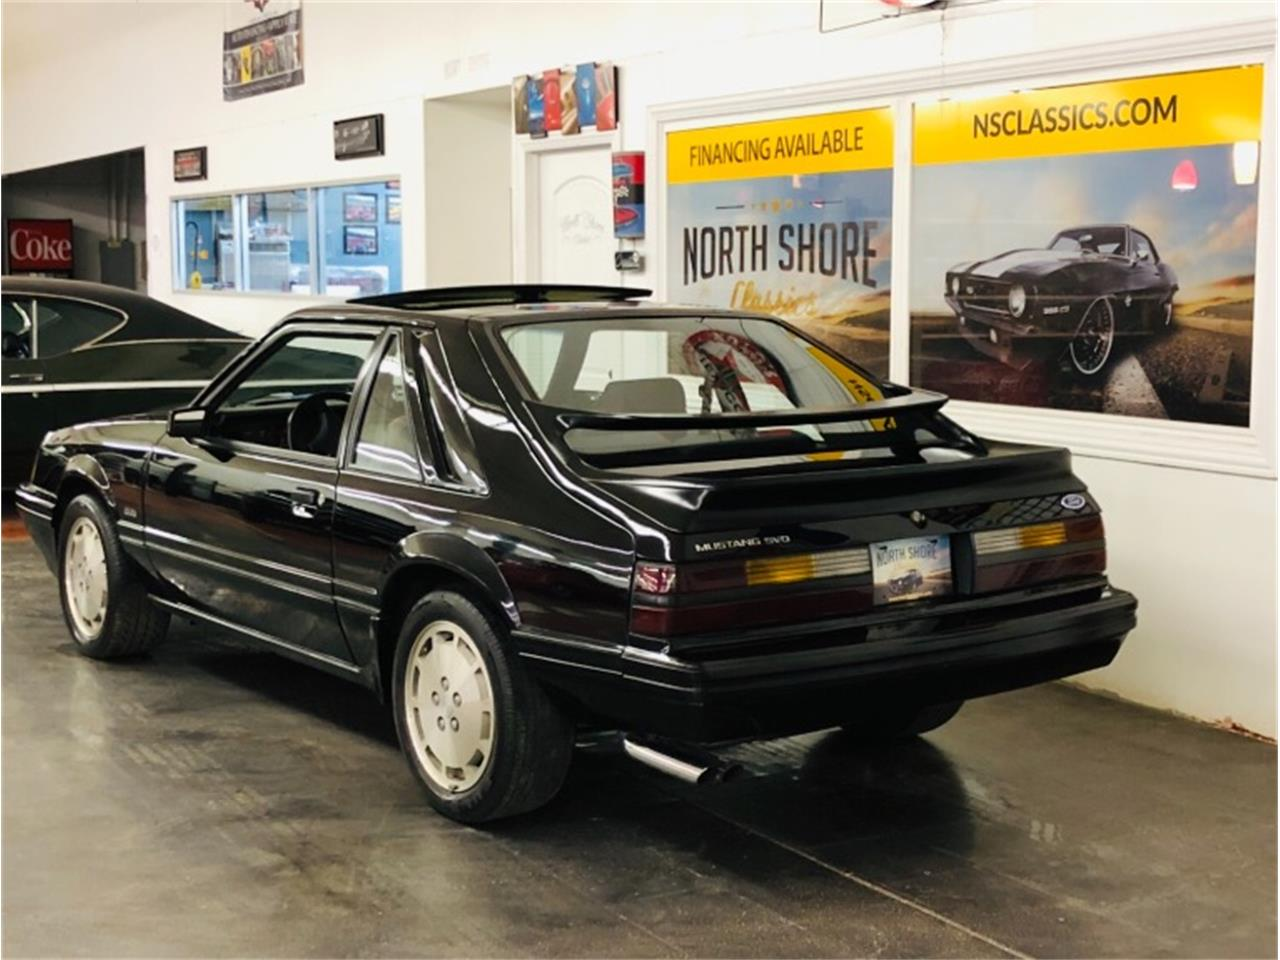 Large Picture of '84 Mustang located in Illinois - $12,997.00 - Q46S